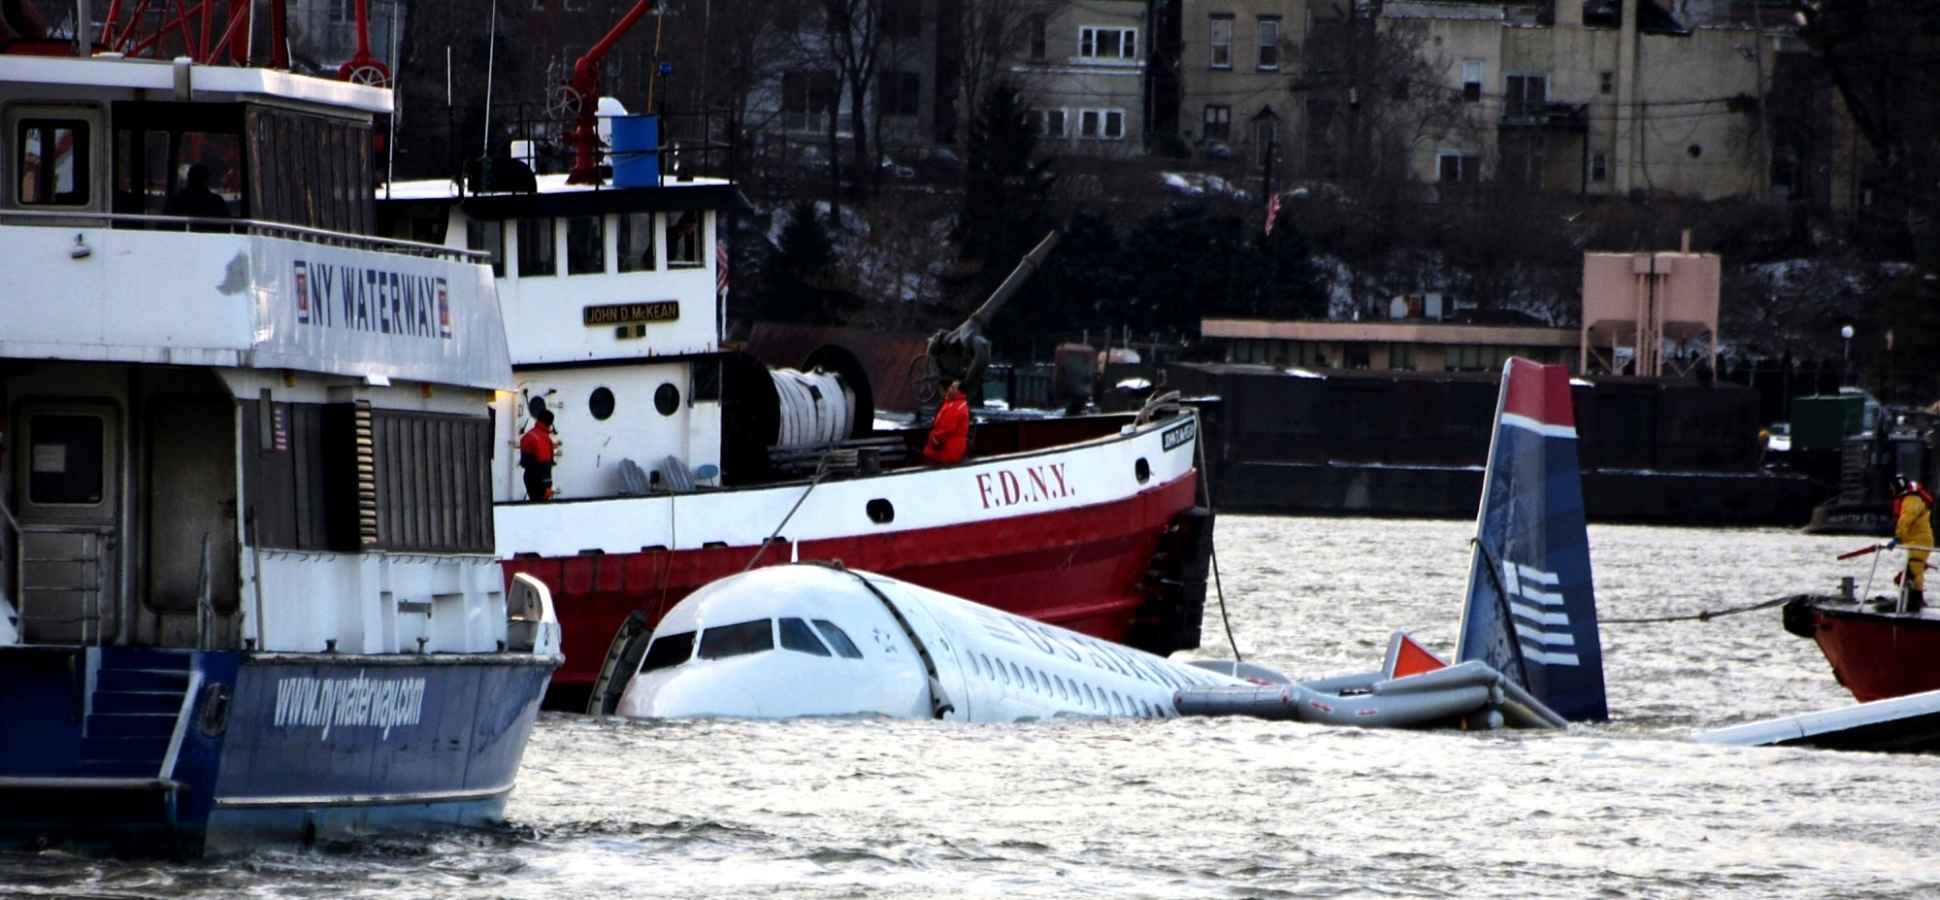 Remember the Plane That Crashed in the Hudson River? A Survivor Shares 3 Major Lessons He Learned